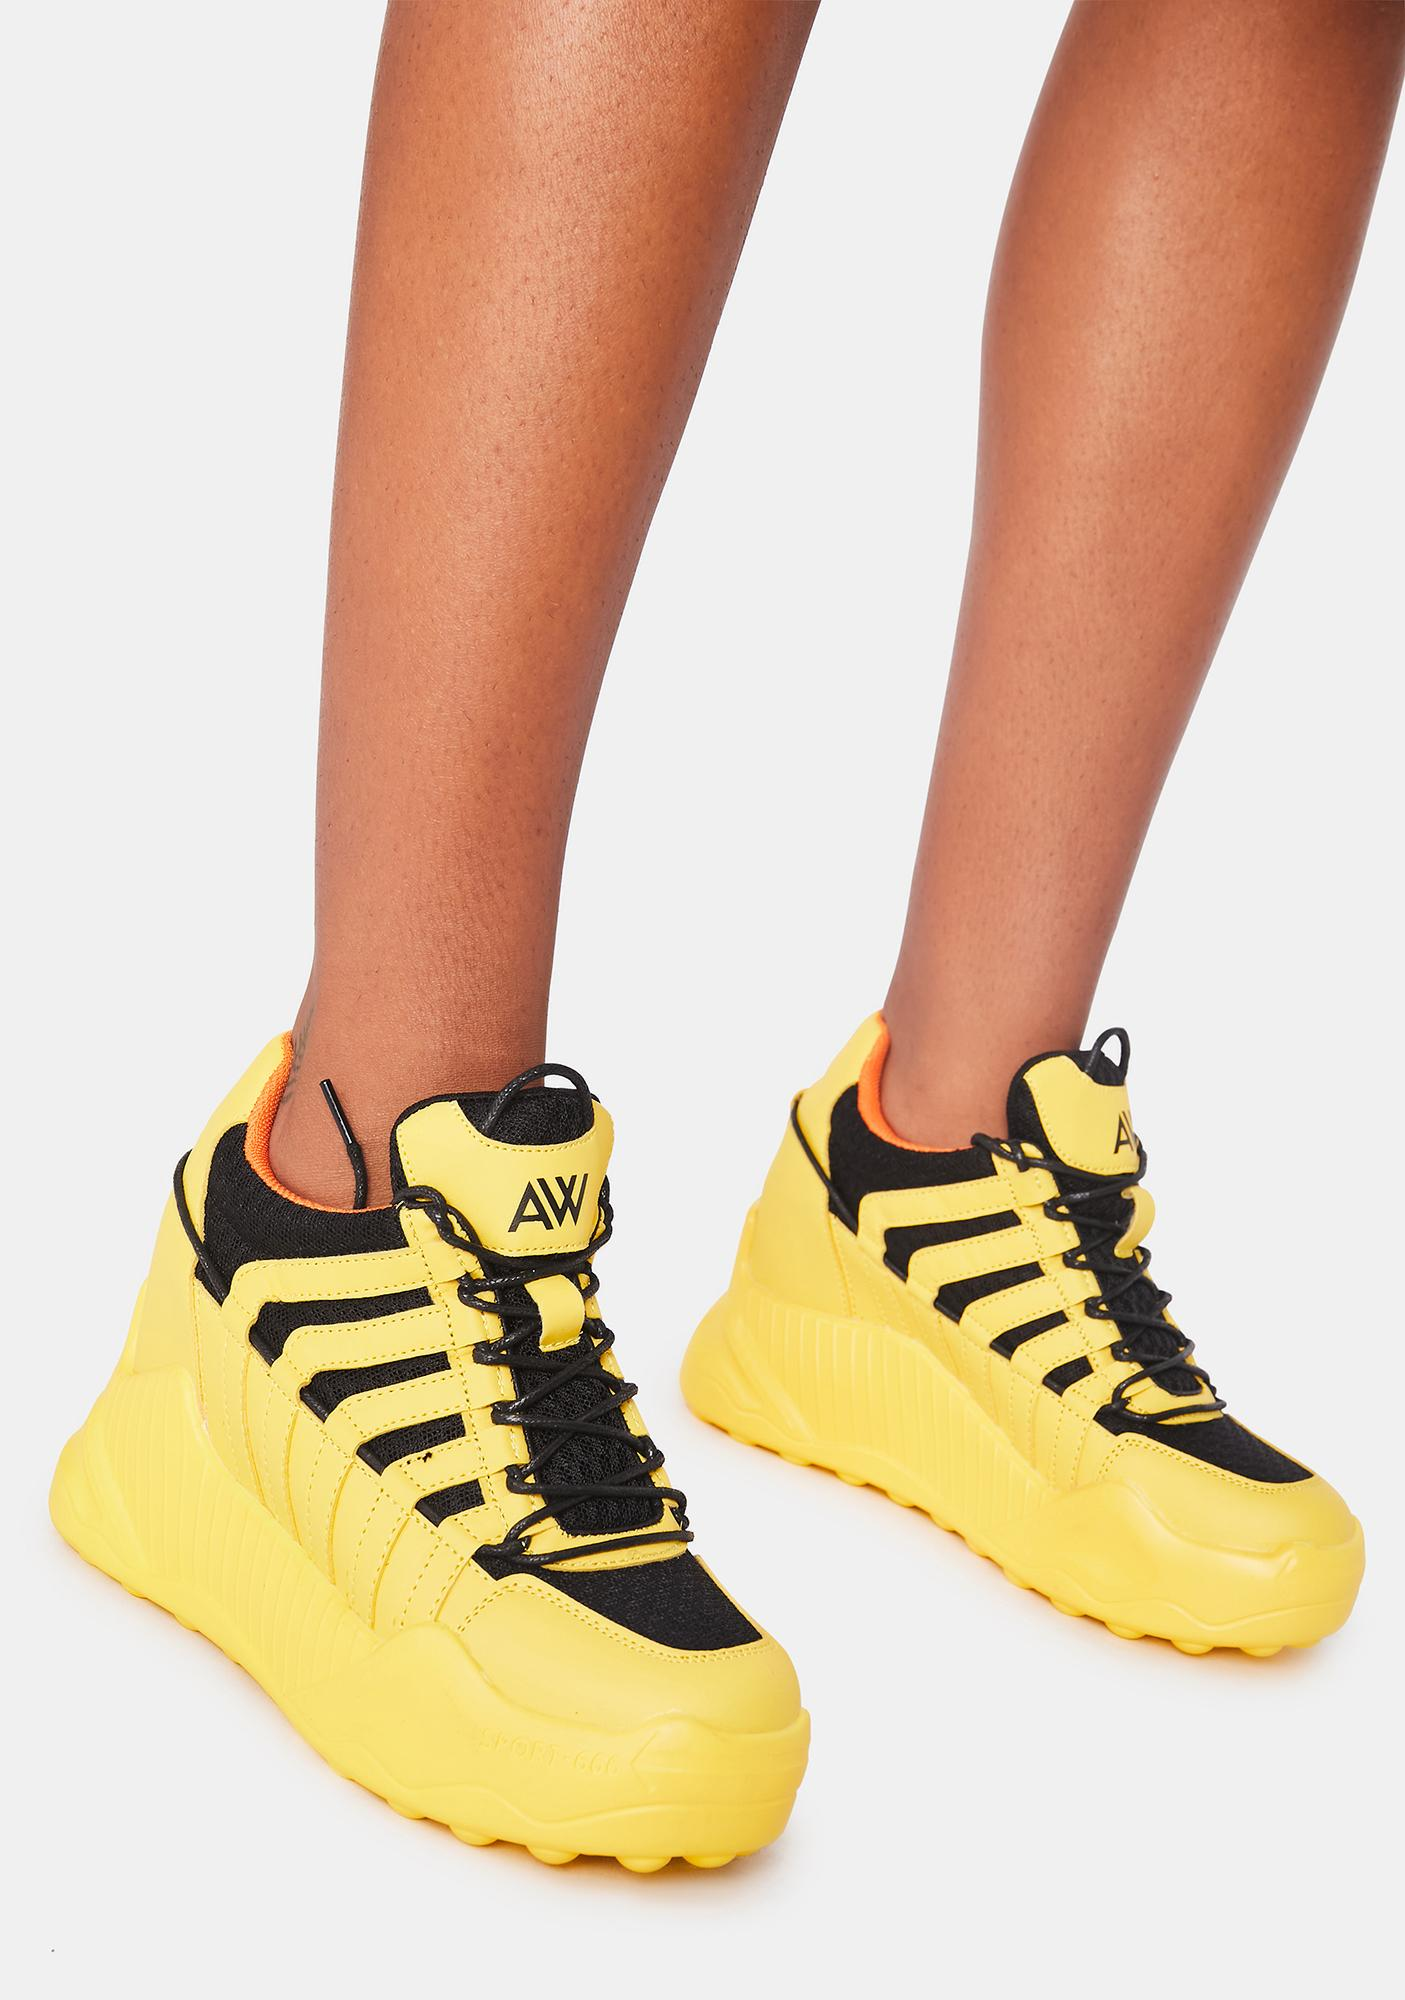 Anthony Wang Yellow Durian Platform Sneakers